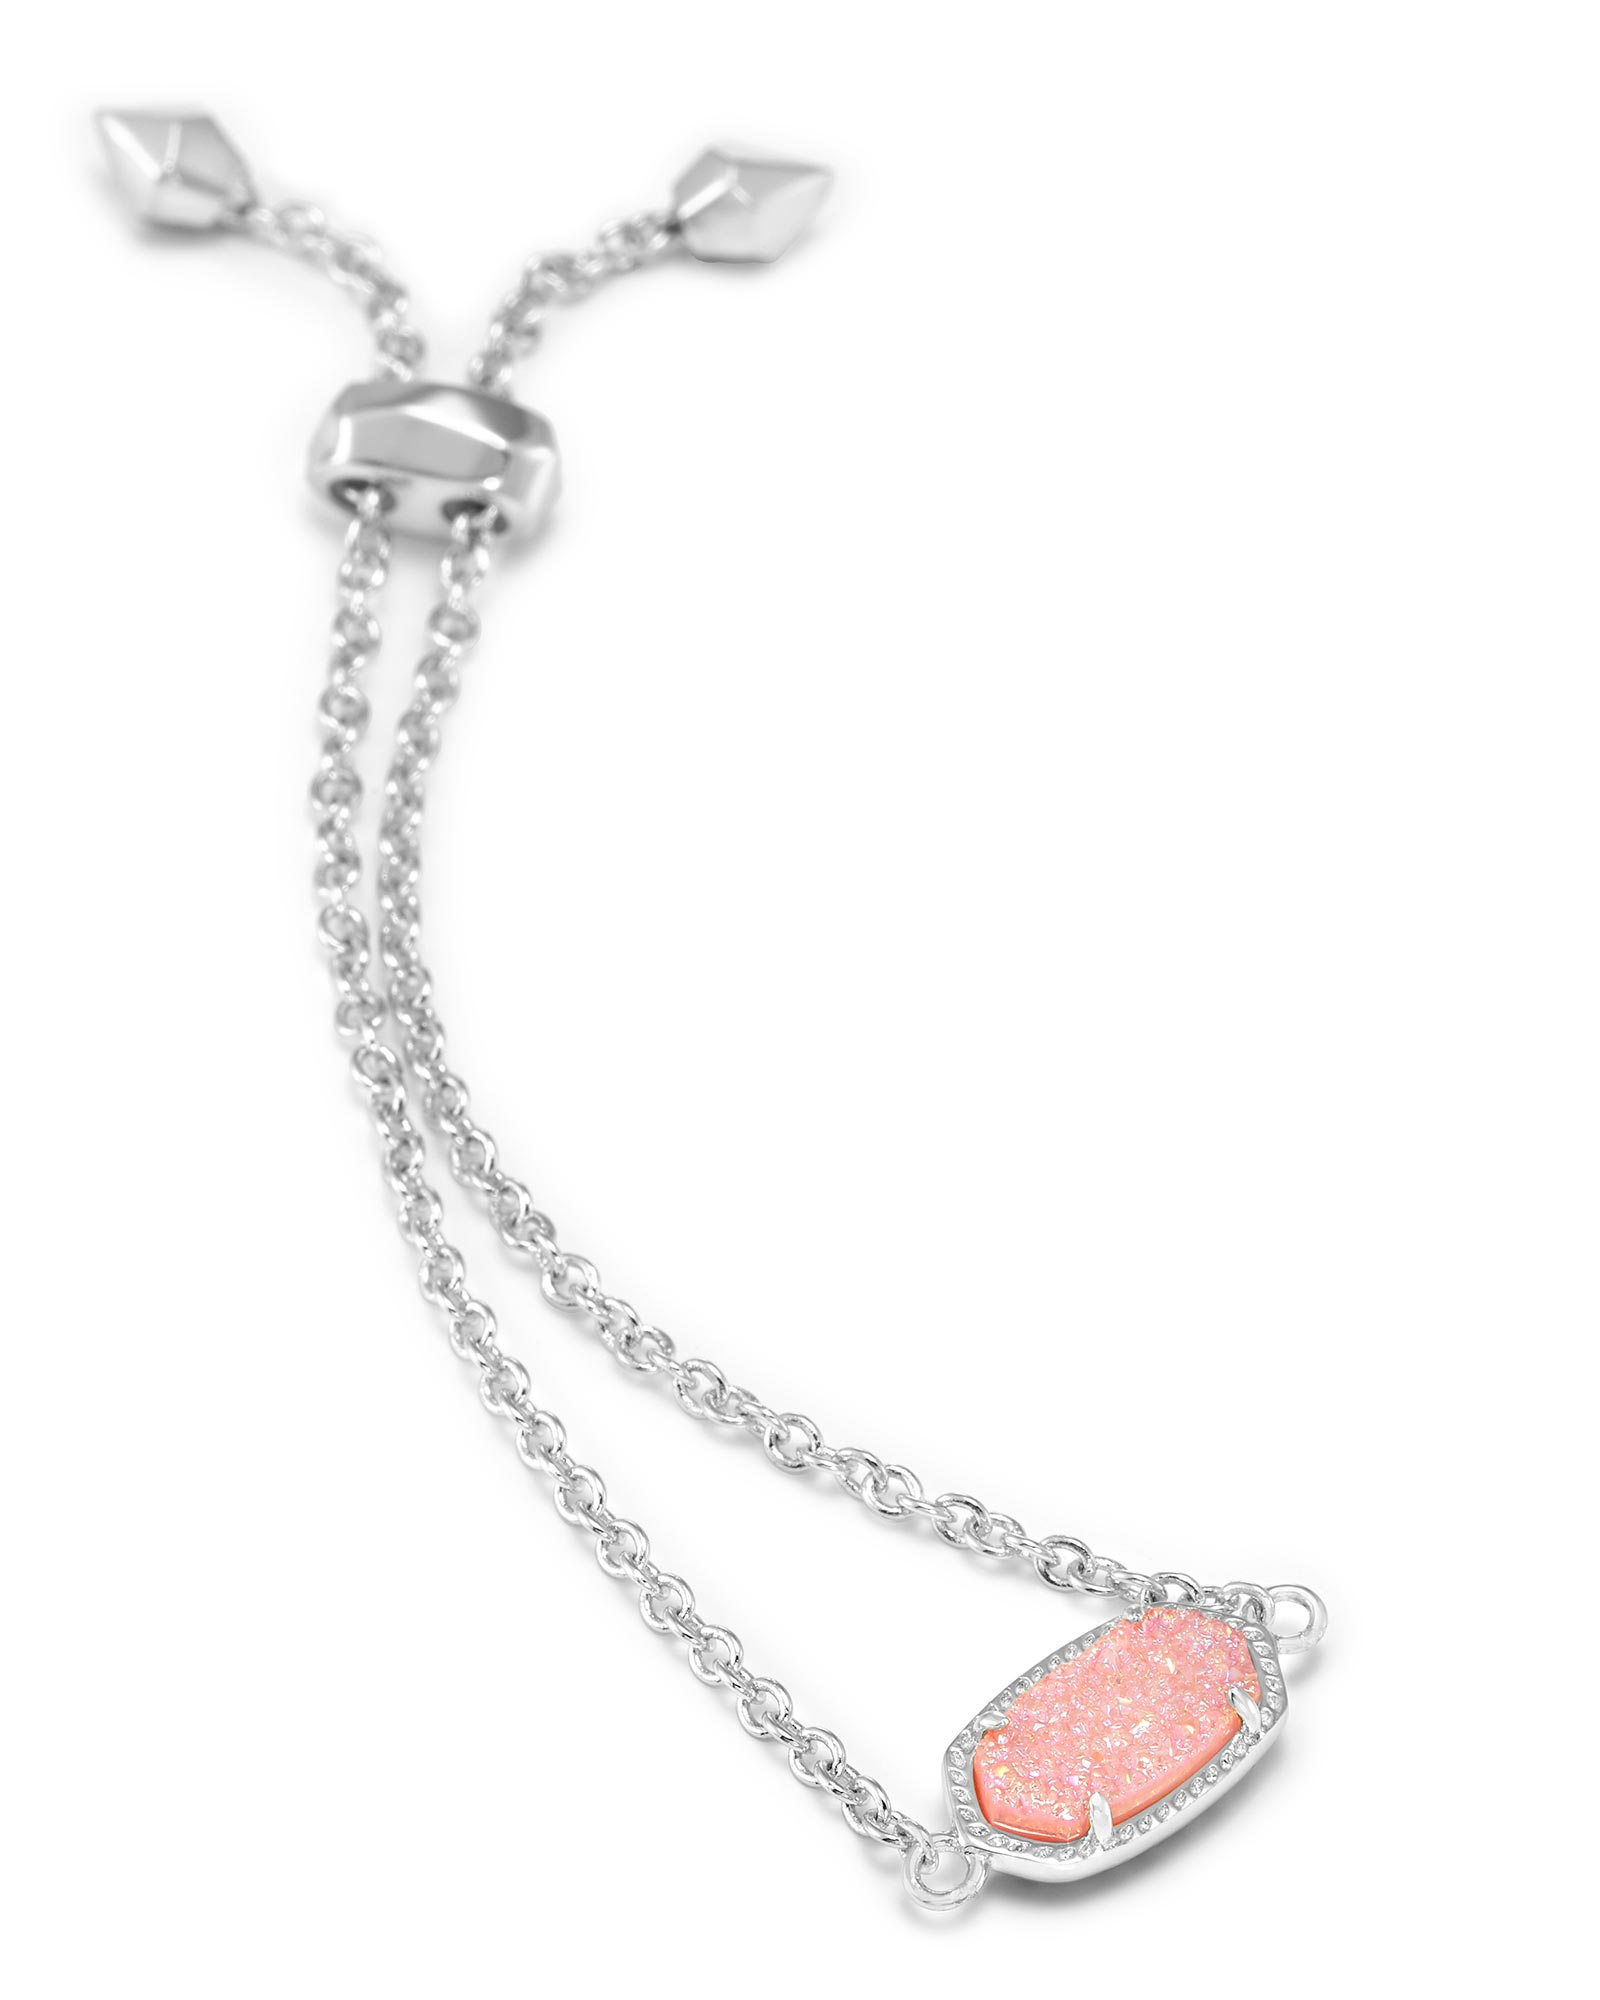 Elaina Silver Adjustable Chain Bracelet in Light Pink Drusy